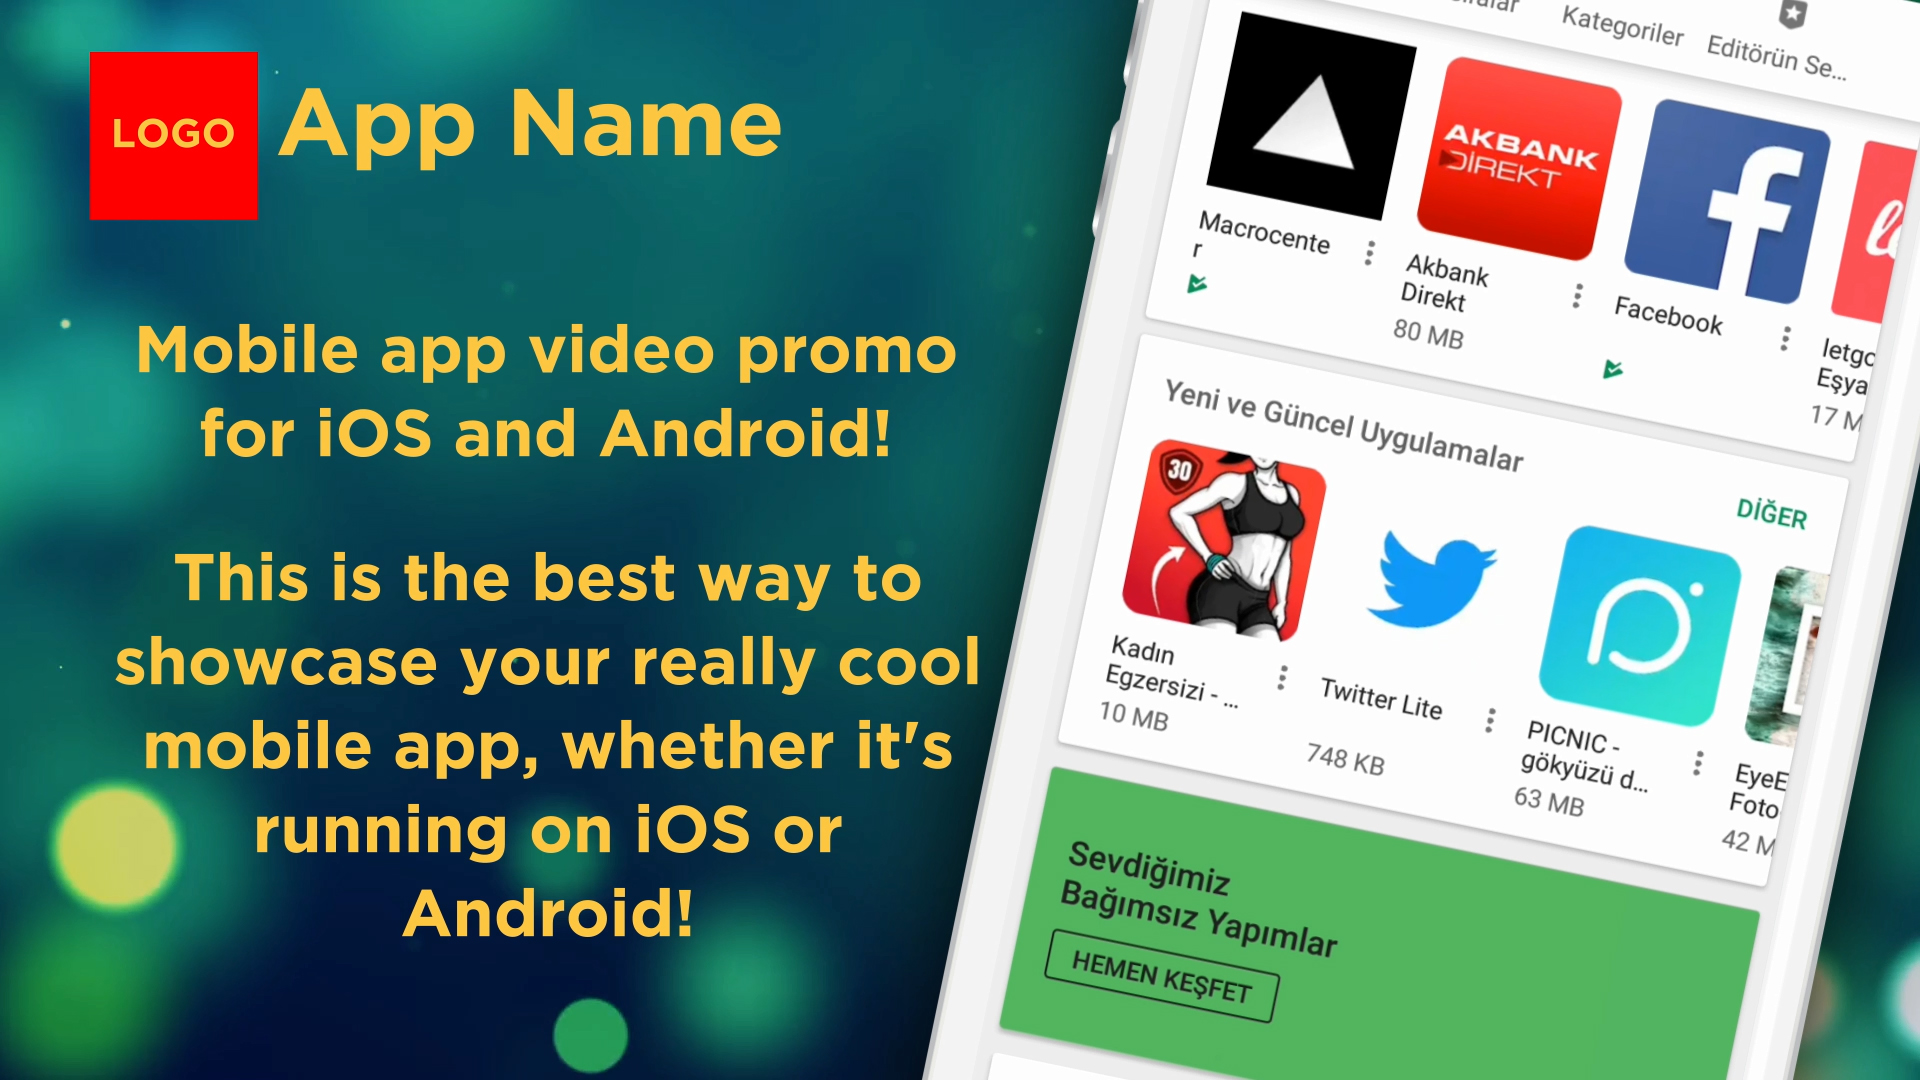 Create-A-Mobile-App-Promo-Video-For-Ios-Or-Android